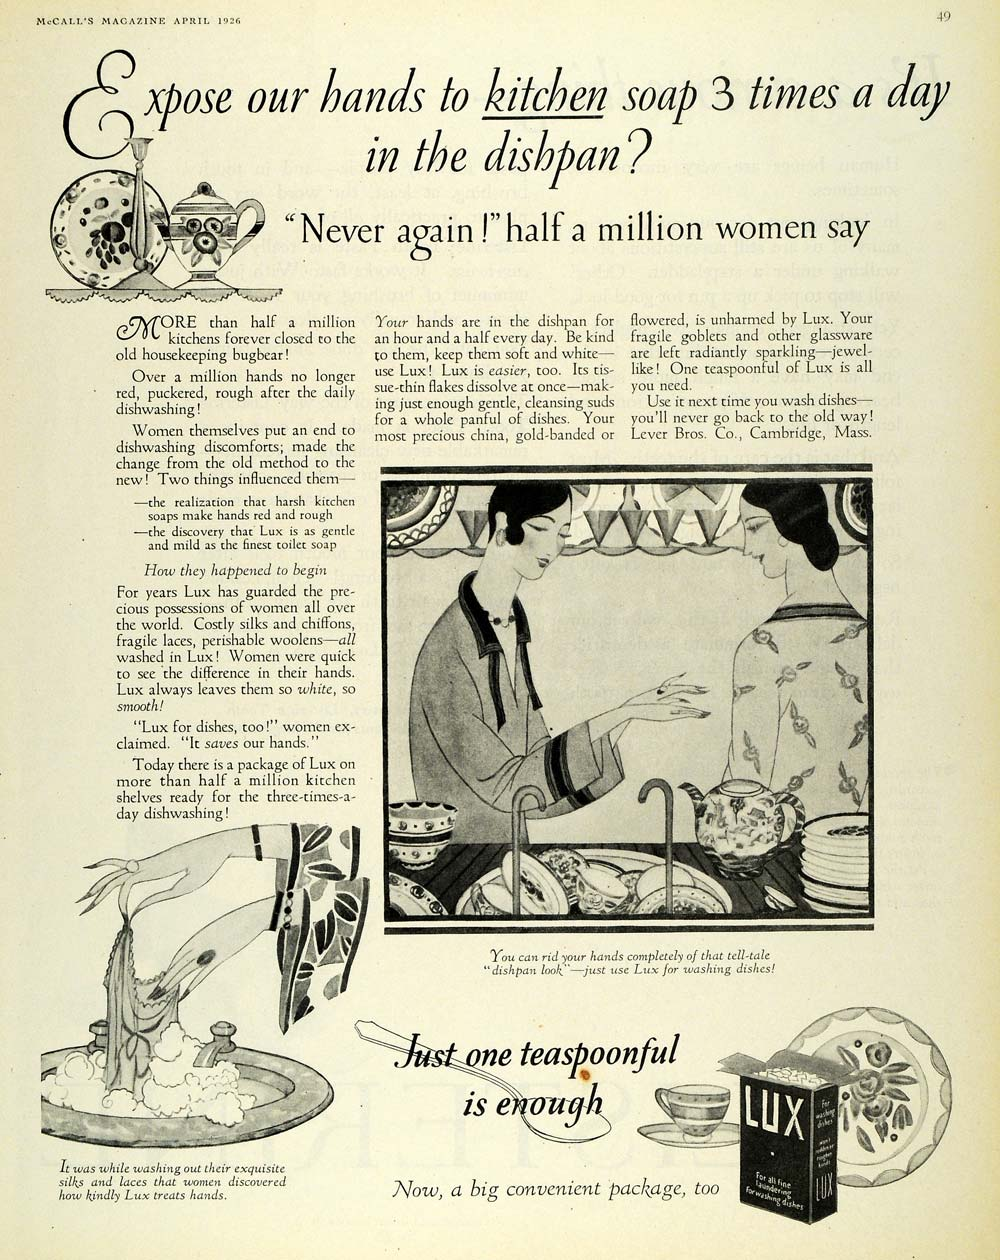 1926 Ad Lux Detergent Laundry Soap Washing Dishes Chore - ORIGINAL MCC4